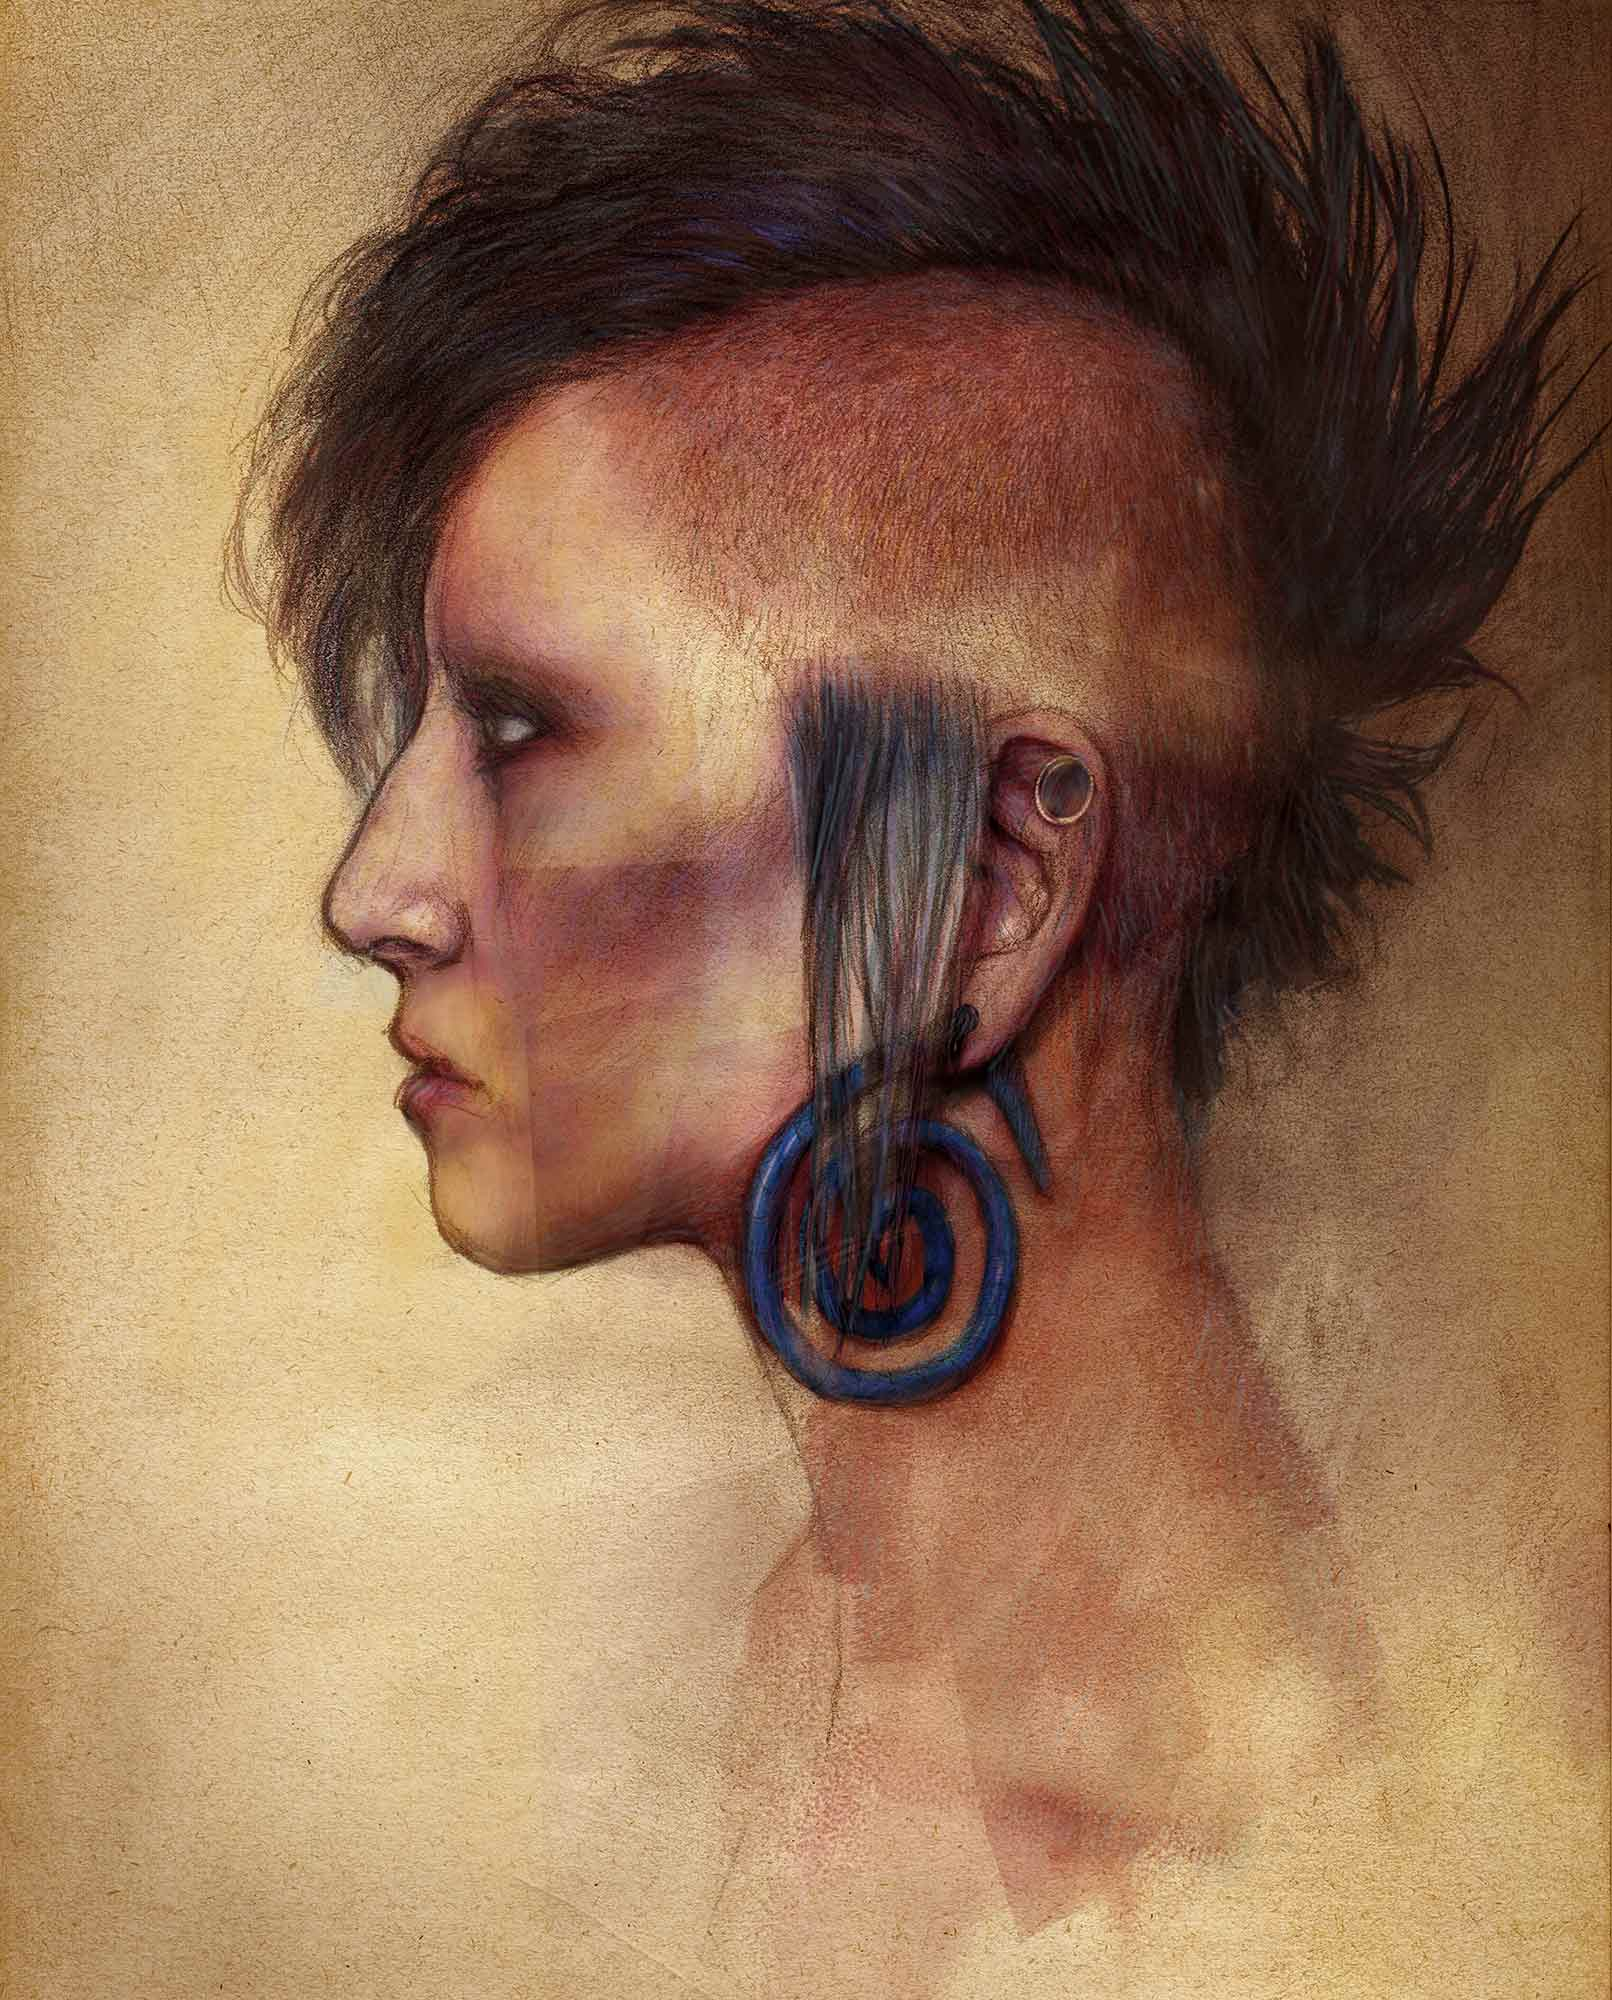 Mario Jodra. Punk head with mohican hair cut